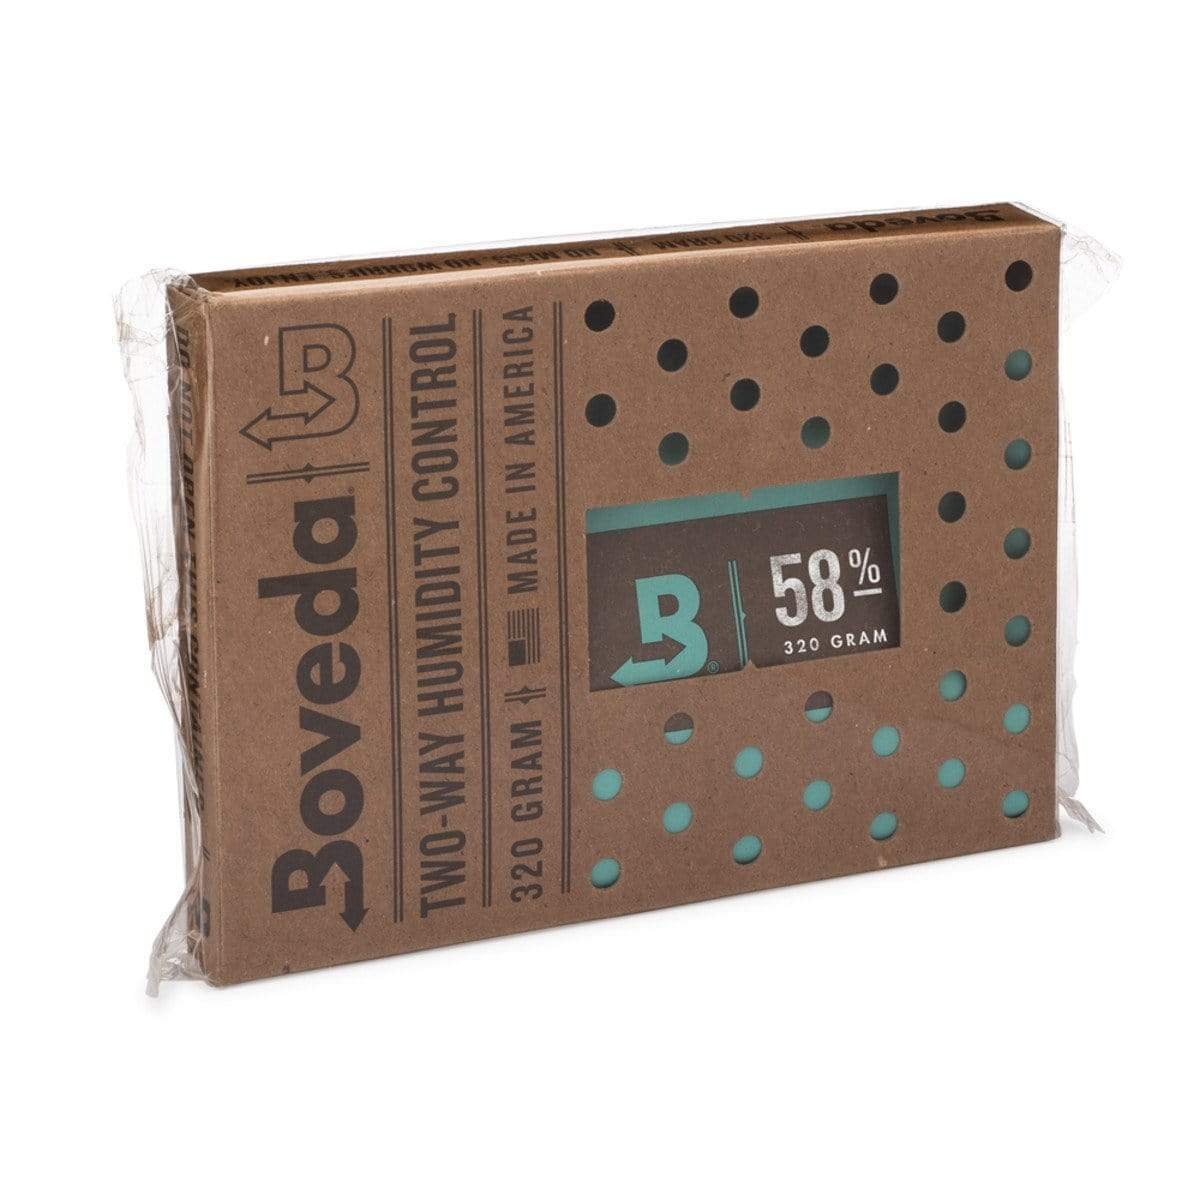 Boveda 58% RH (320 Gram) - Single Pack